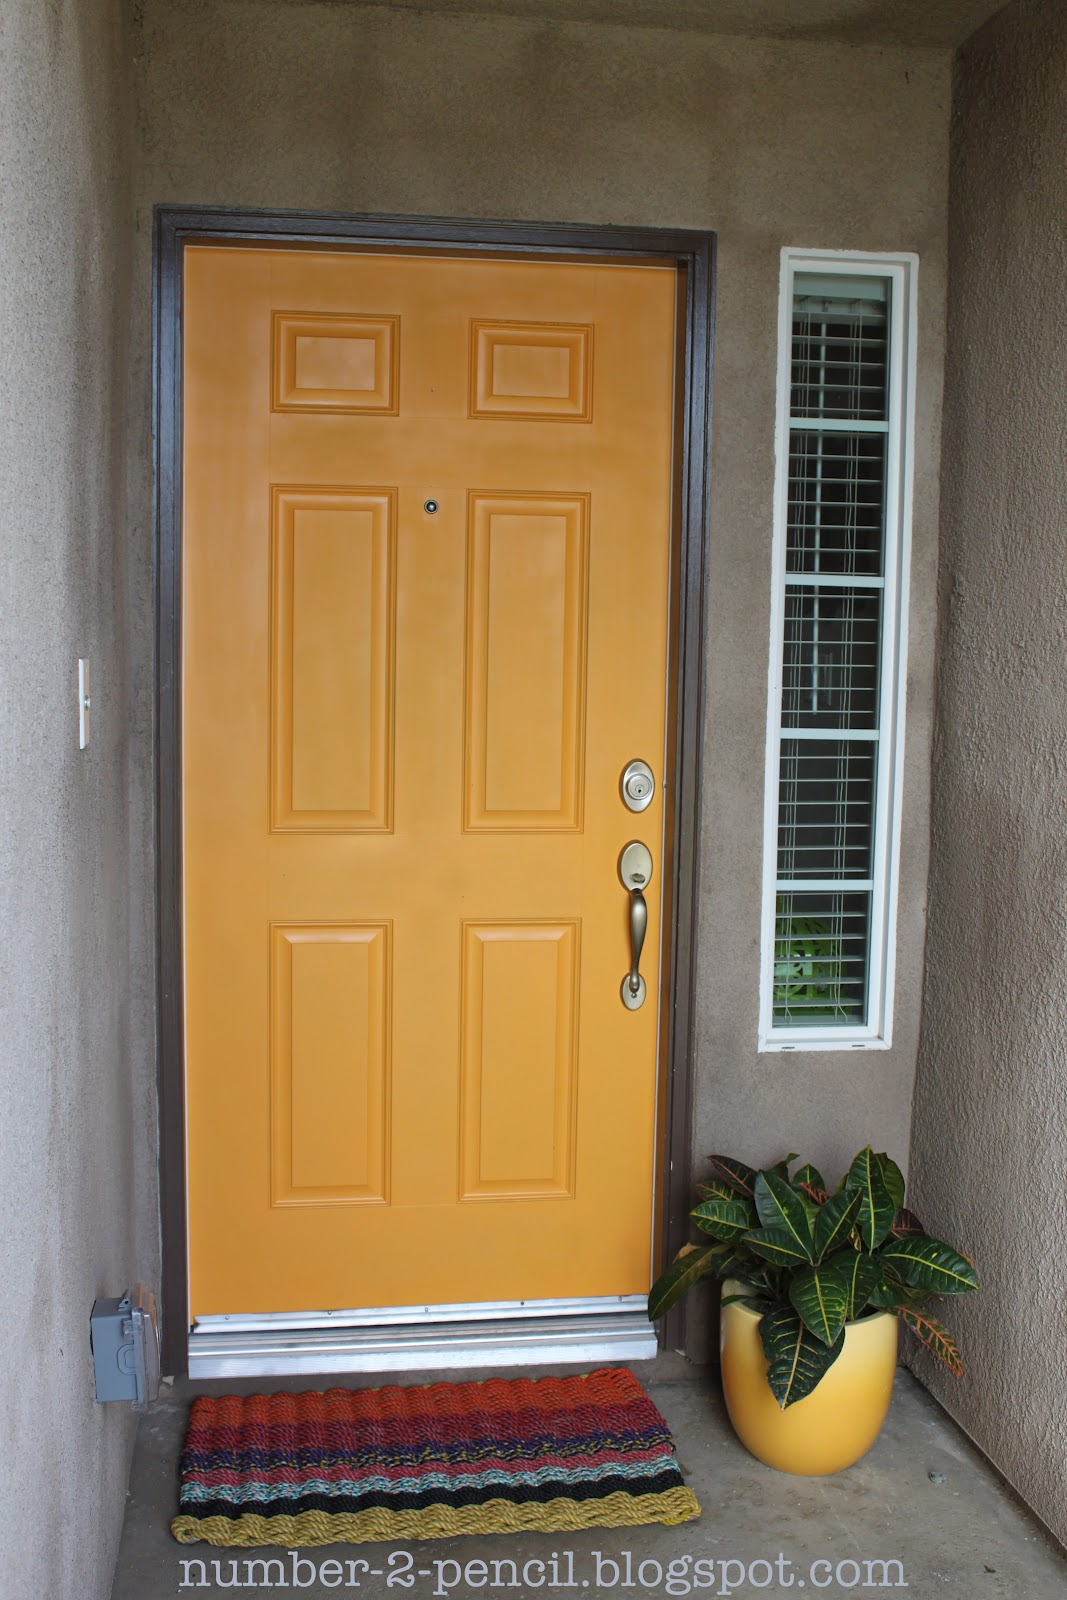 1600 #9C6F2F Spray Paint The Front Door! No. 2 Pencil pic Paint Colors For Front Doors Pictures 48211067